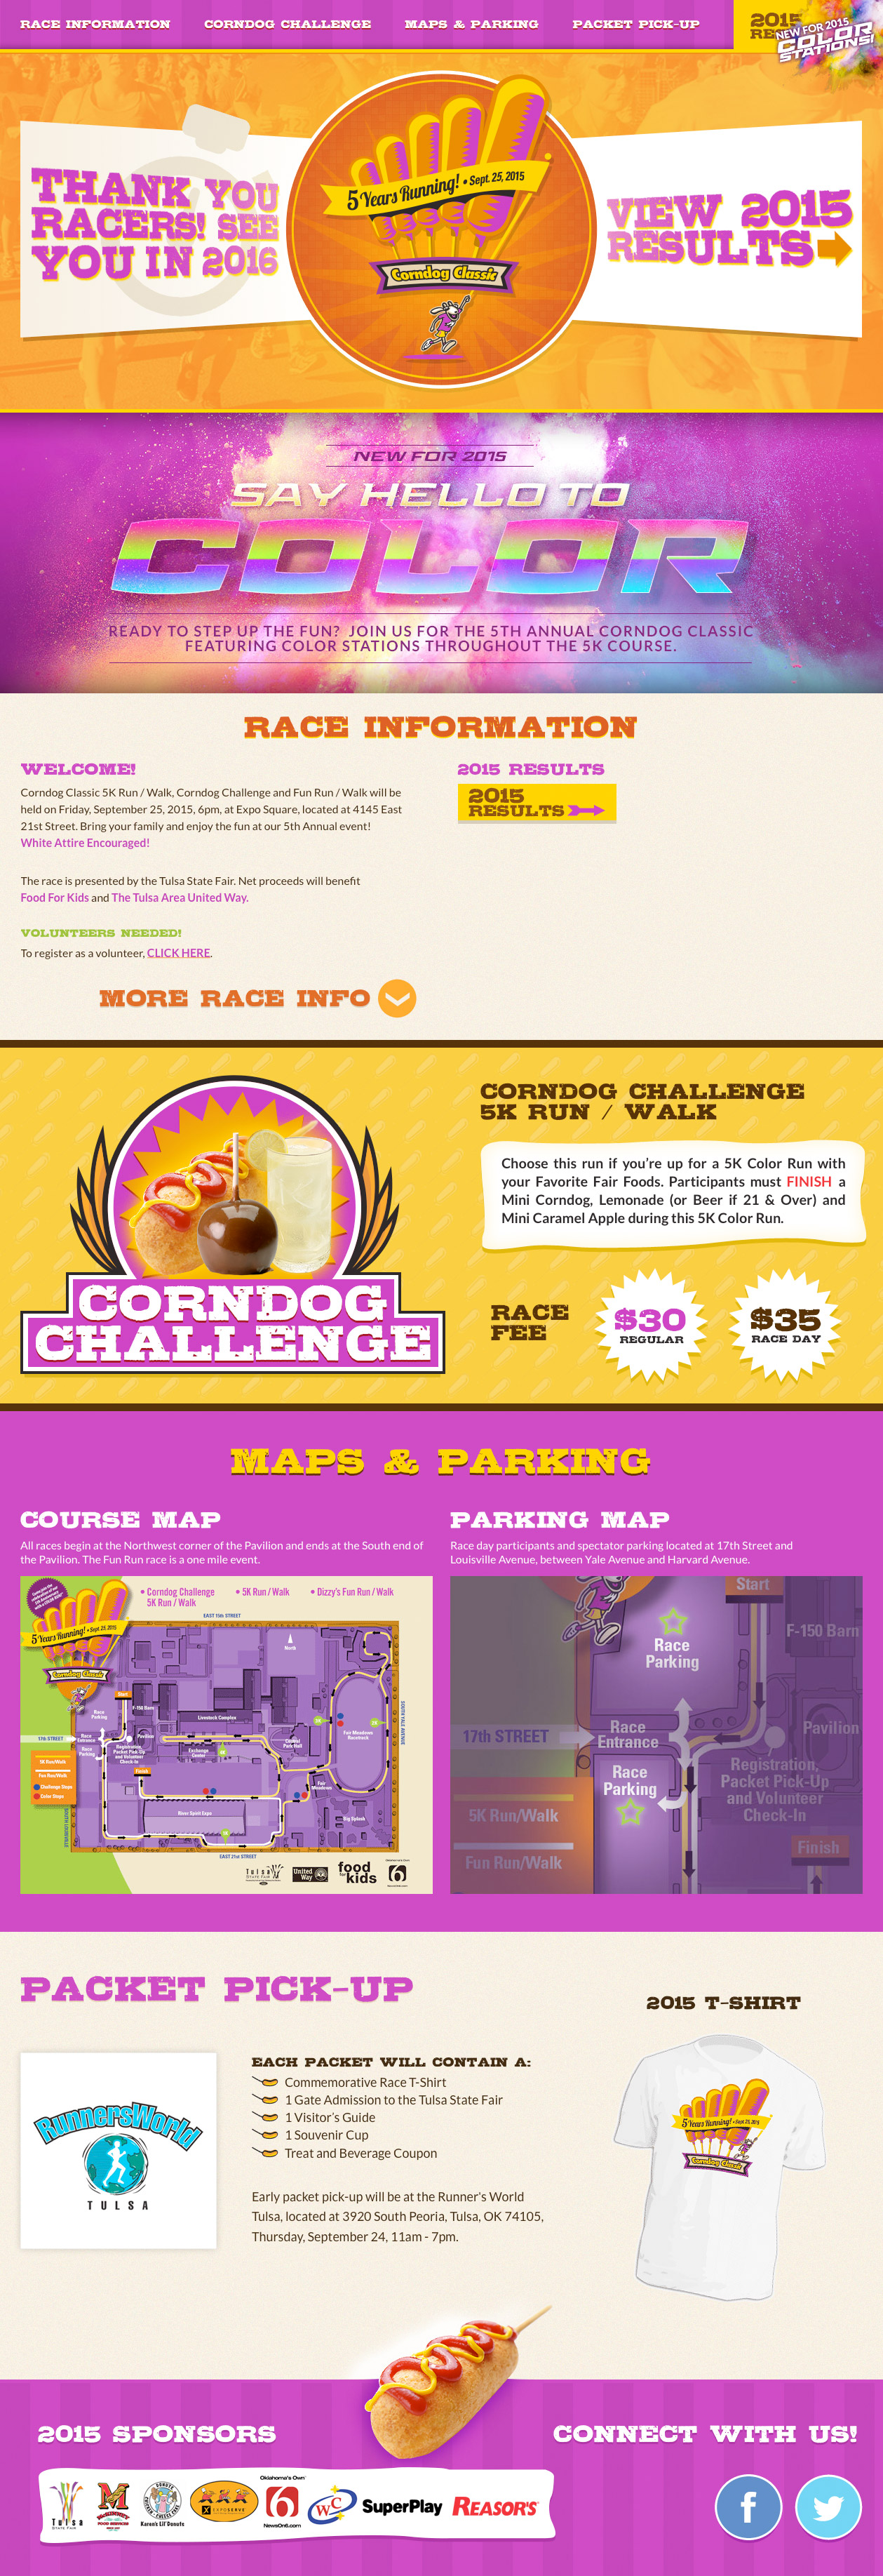 Custom Website for Corndog Classic 5k